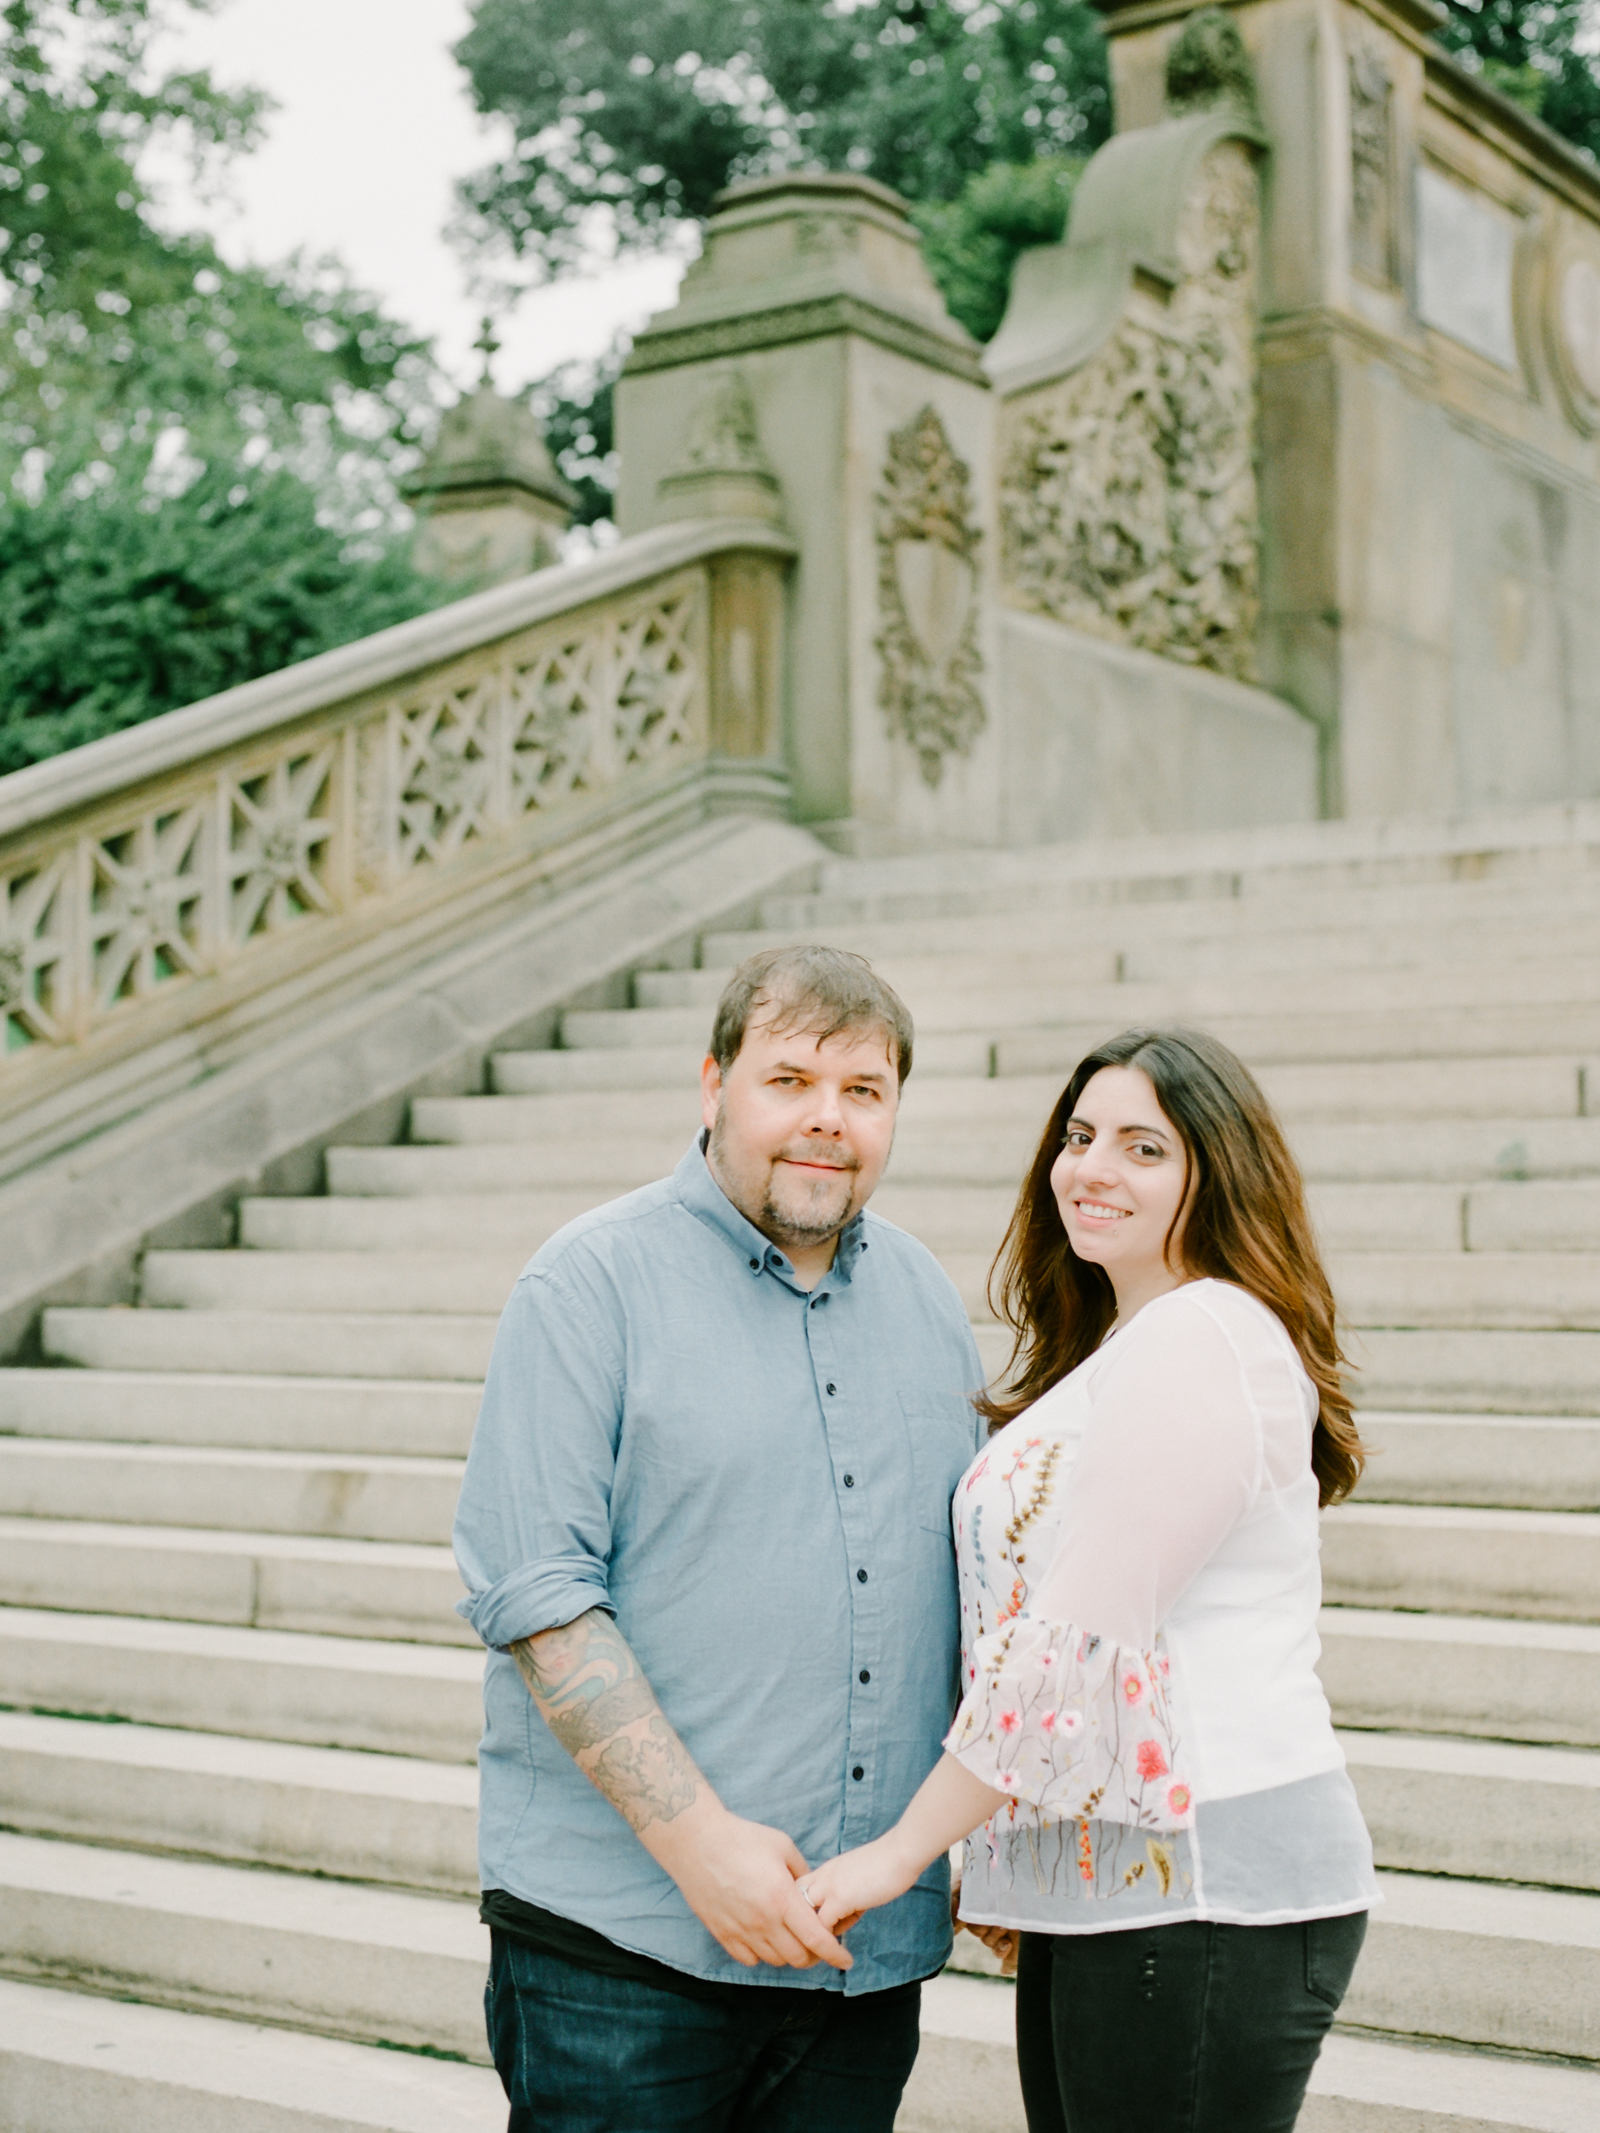 Central-Park-NYC-Engagement-Session-film-photography-36.jpg